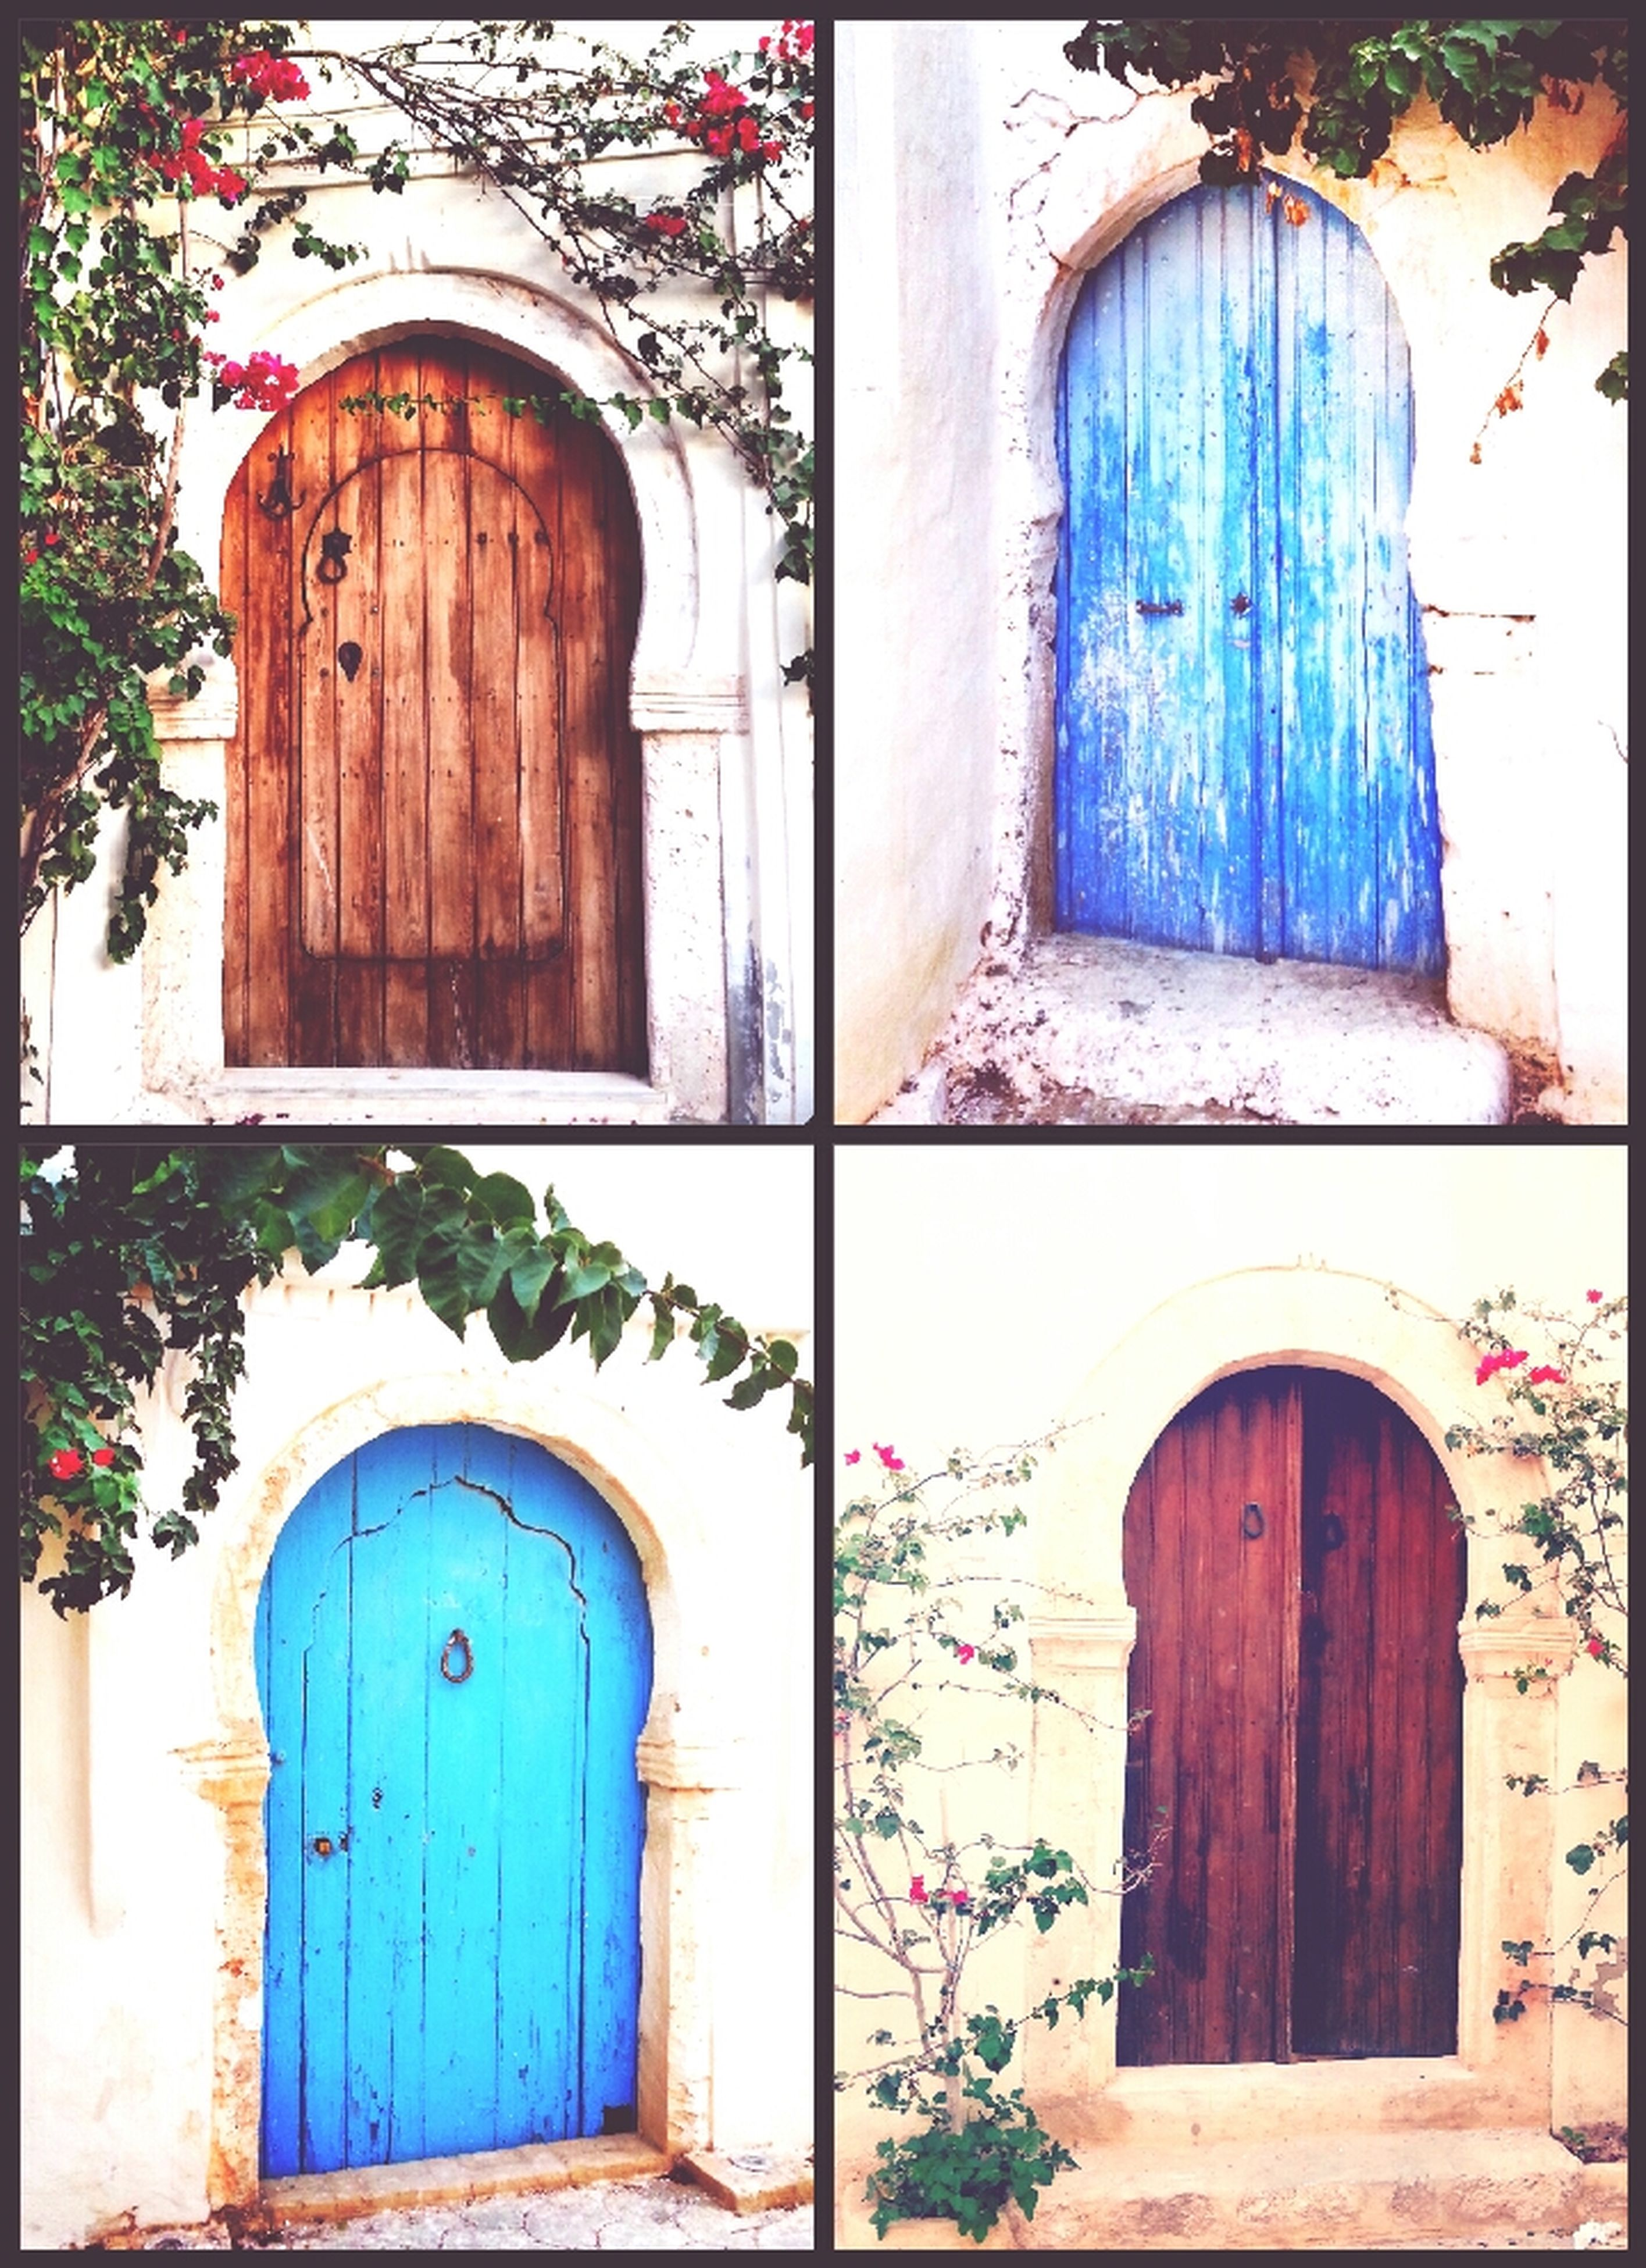 architecture, built structure, building exterior, door, house, old, arch, closed, entrance, window, weathered, blue, residential structure, abandoned, wall - building feature, damaged, outdoors, wall, day, residential building